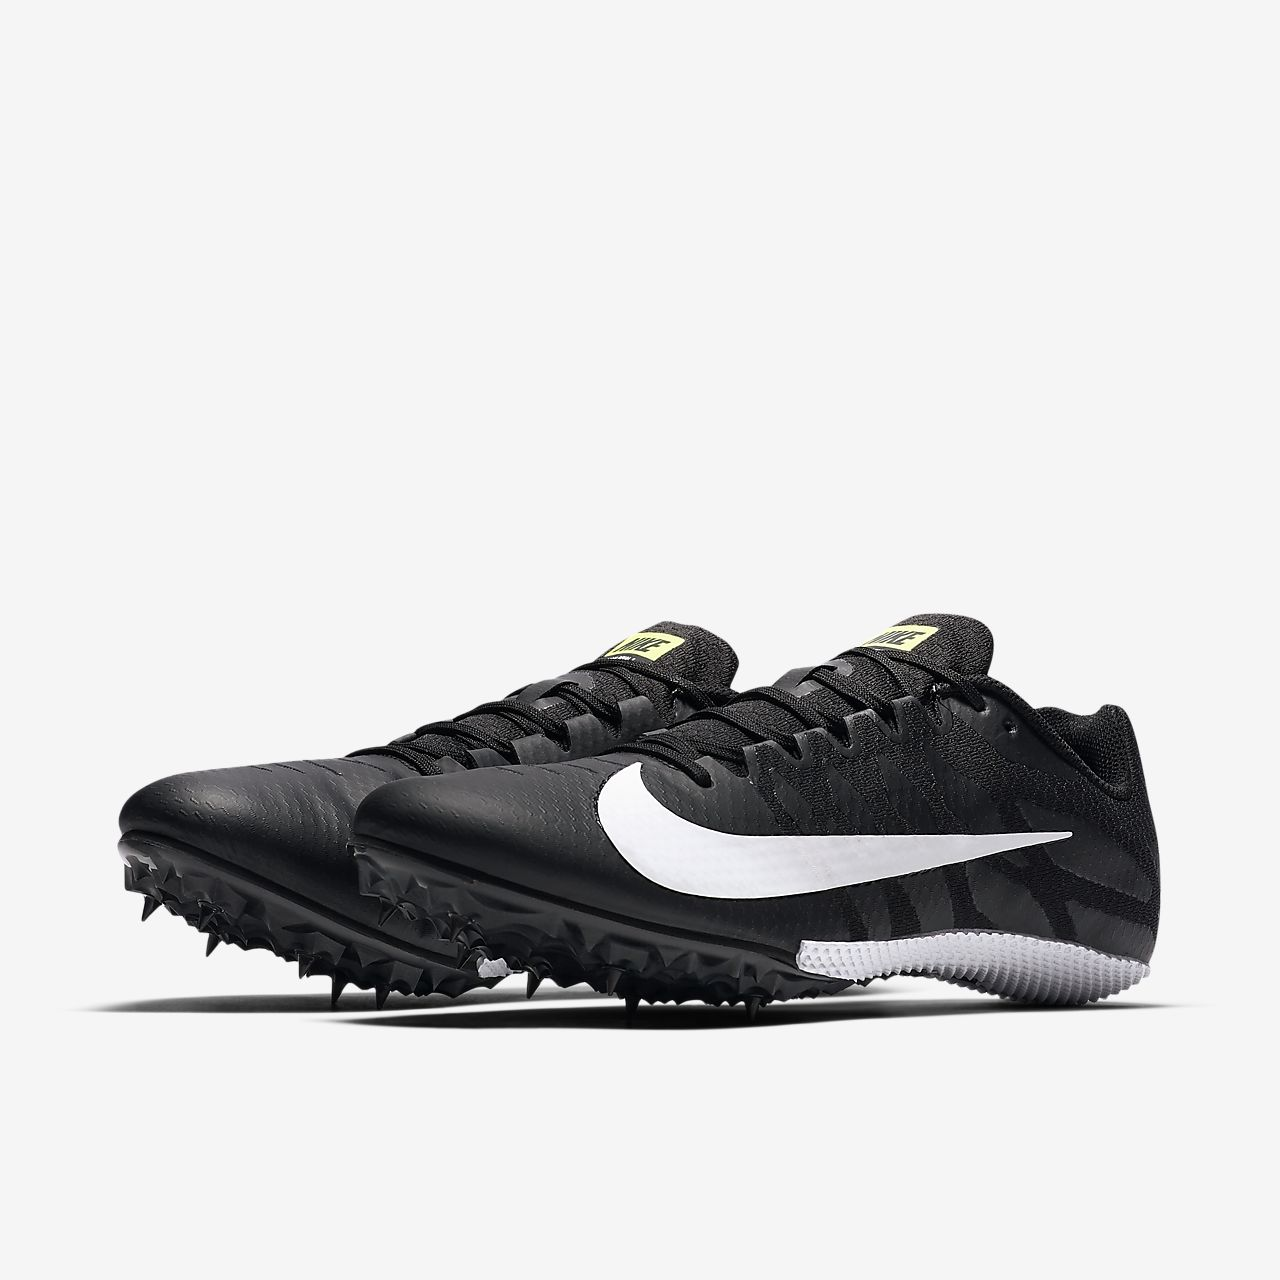 info for 0f413 686de ... Nike Zoom Rival S 9 Unisex Track Spike